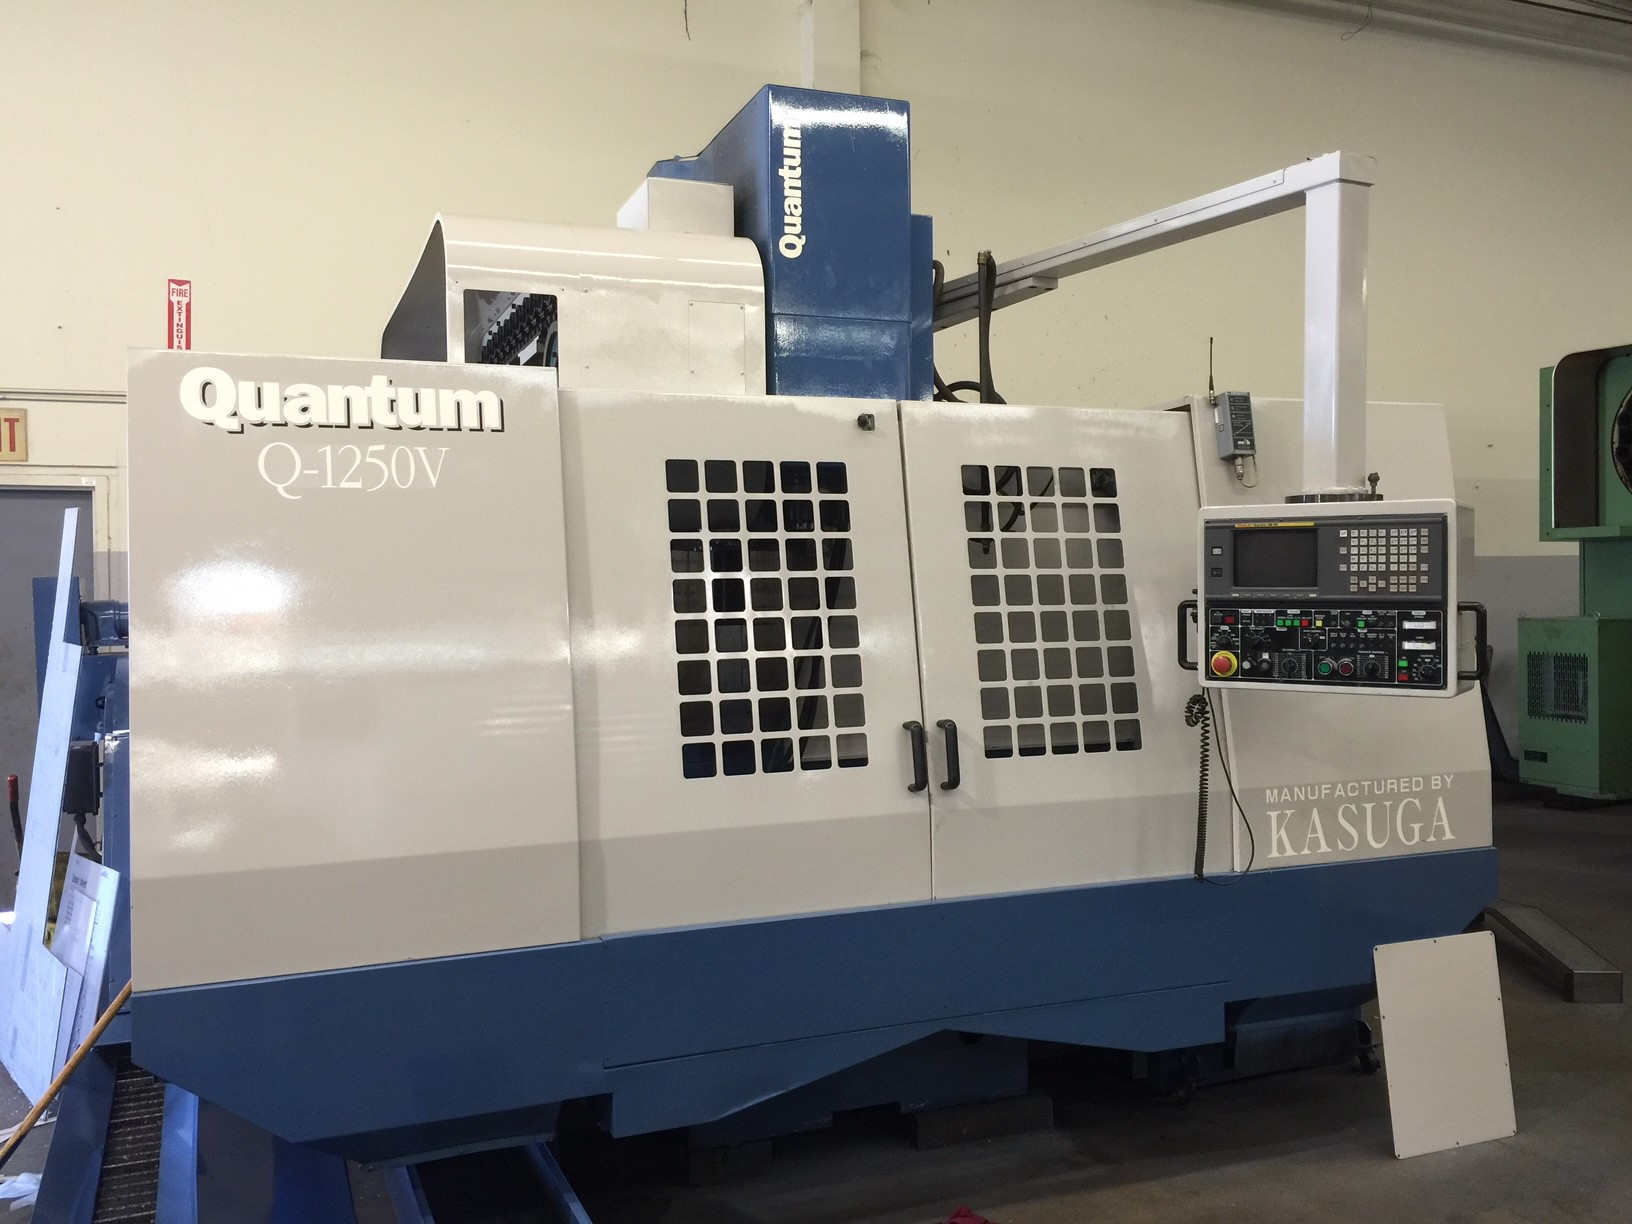 "Kasuga Quantum Q-1250V, 50""x25""x25.6"", 6K RPM, 25HP, CT50, 40ATC, Fanuc 18M Ctrl, Chip Conveyor, Tsudakoma 4th Axis, Tailstock, Rigid Tapping"